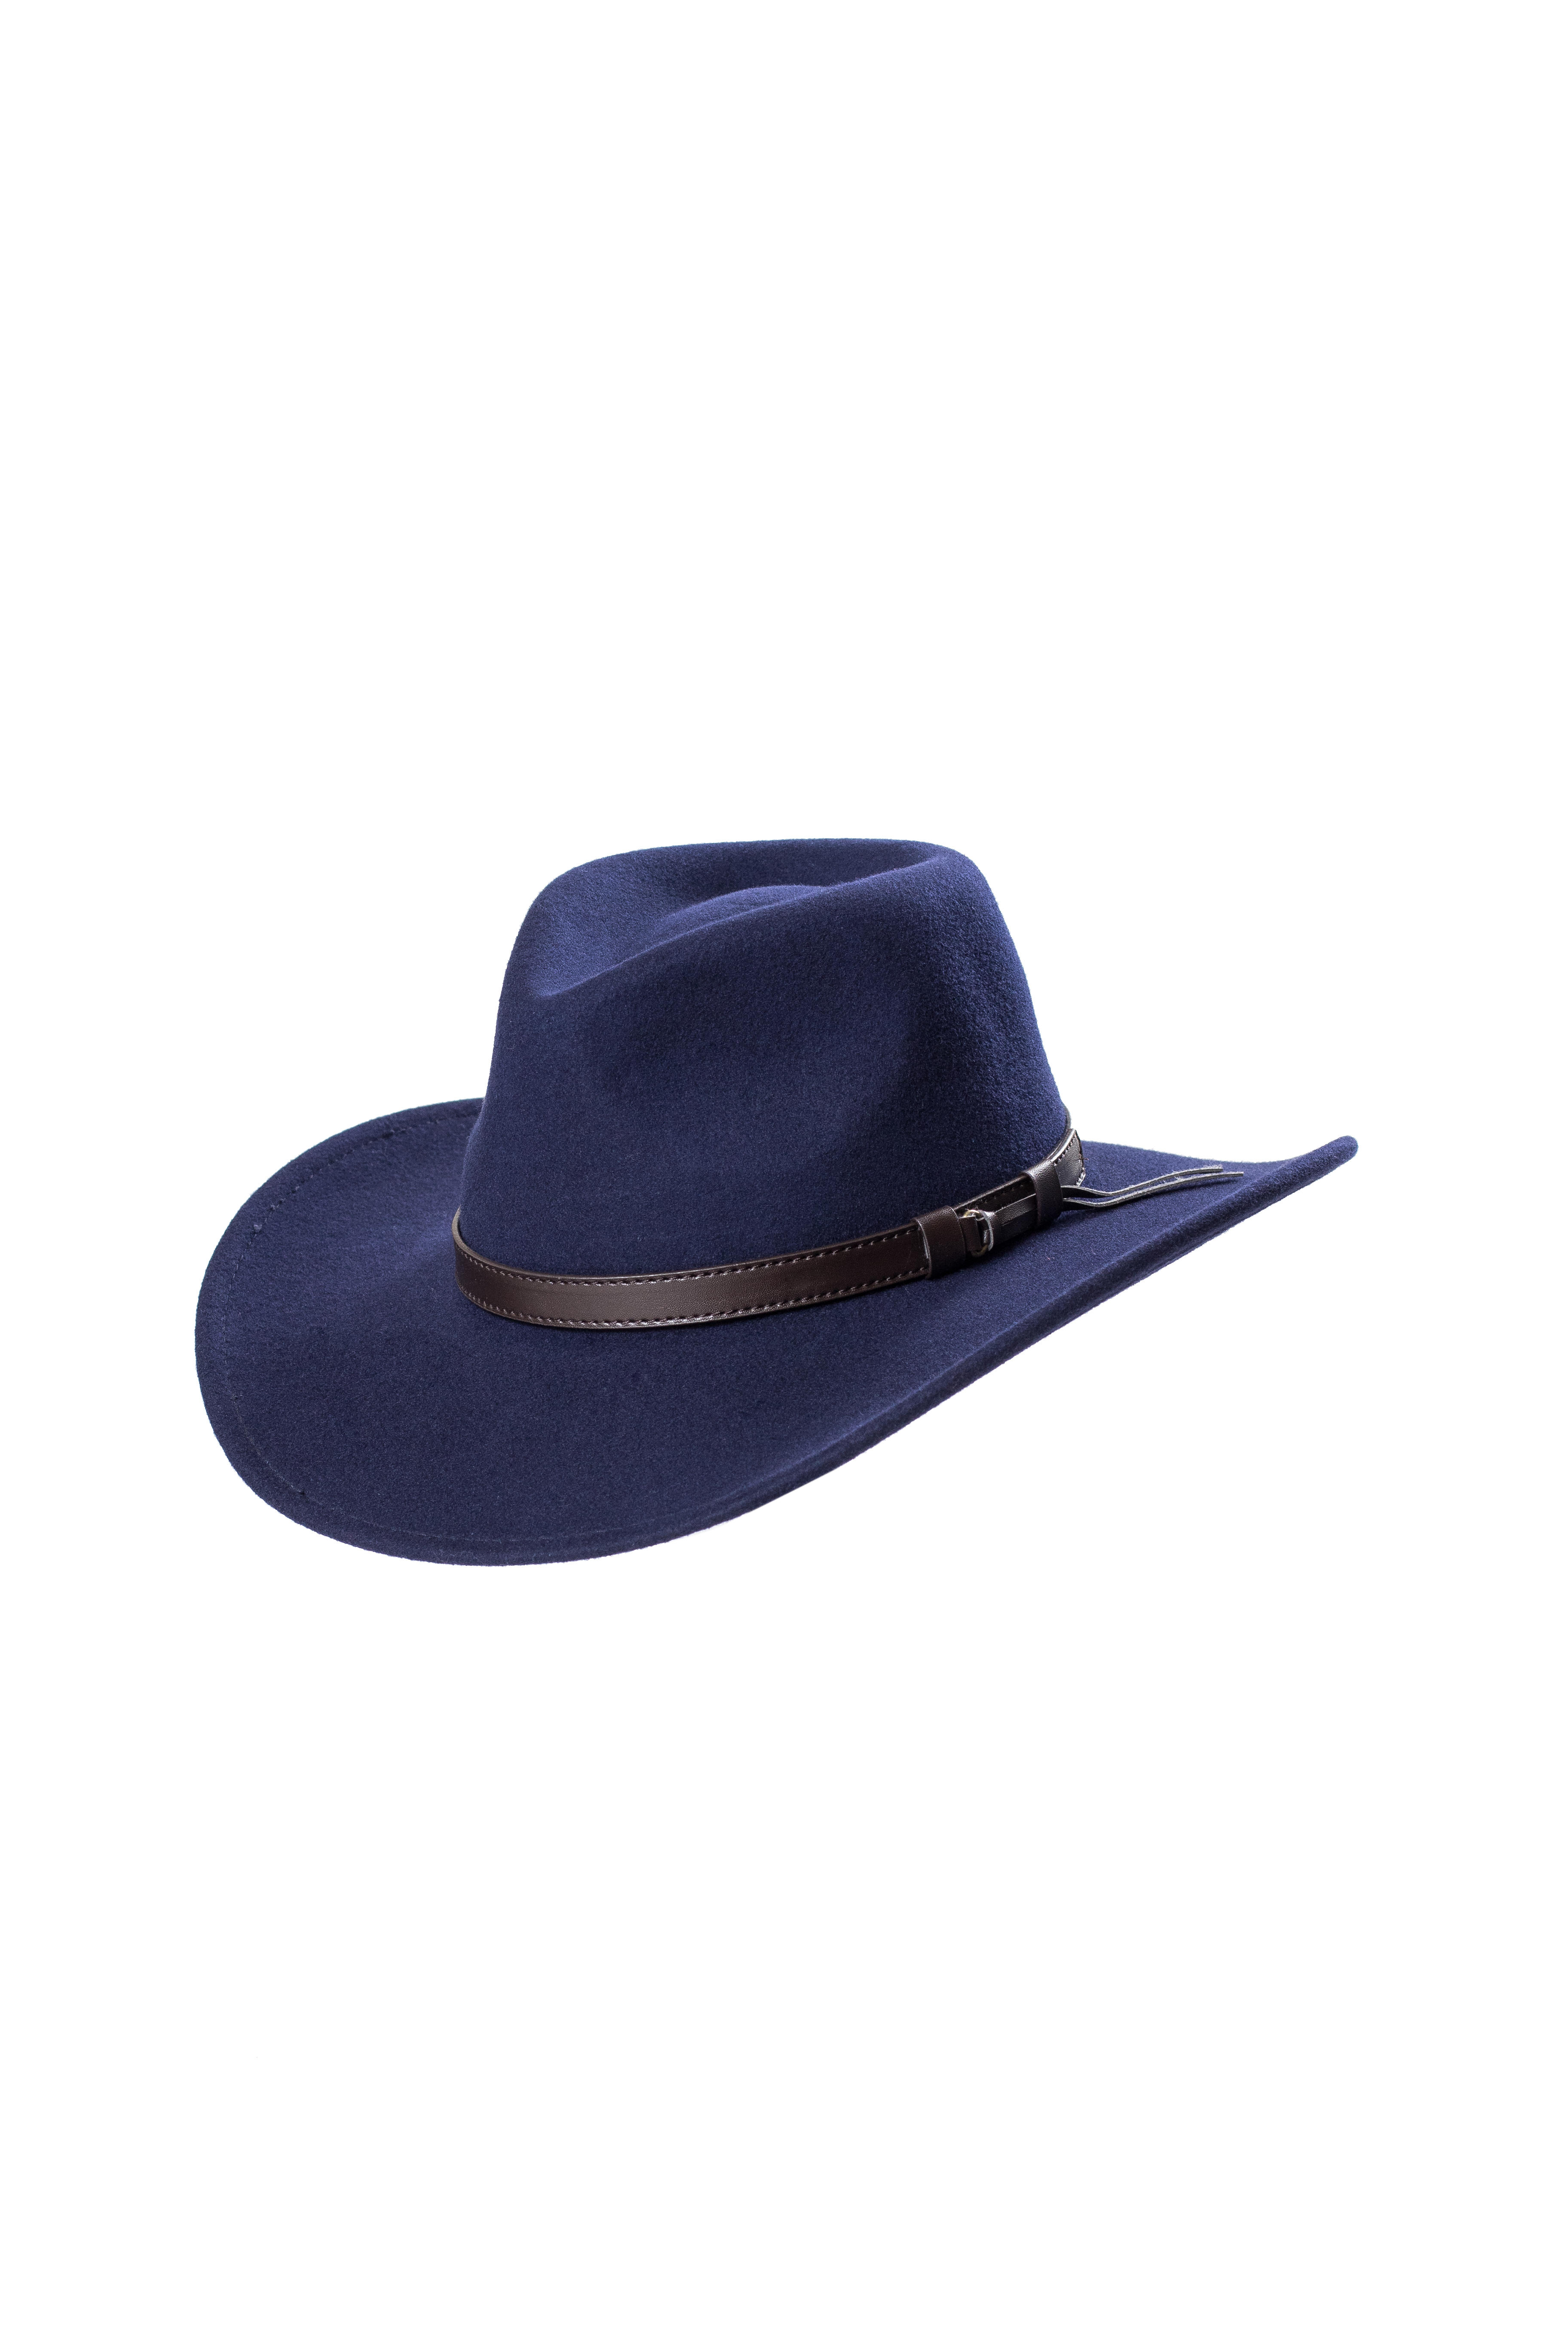 Wool Felt Cowboy Hat Navy